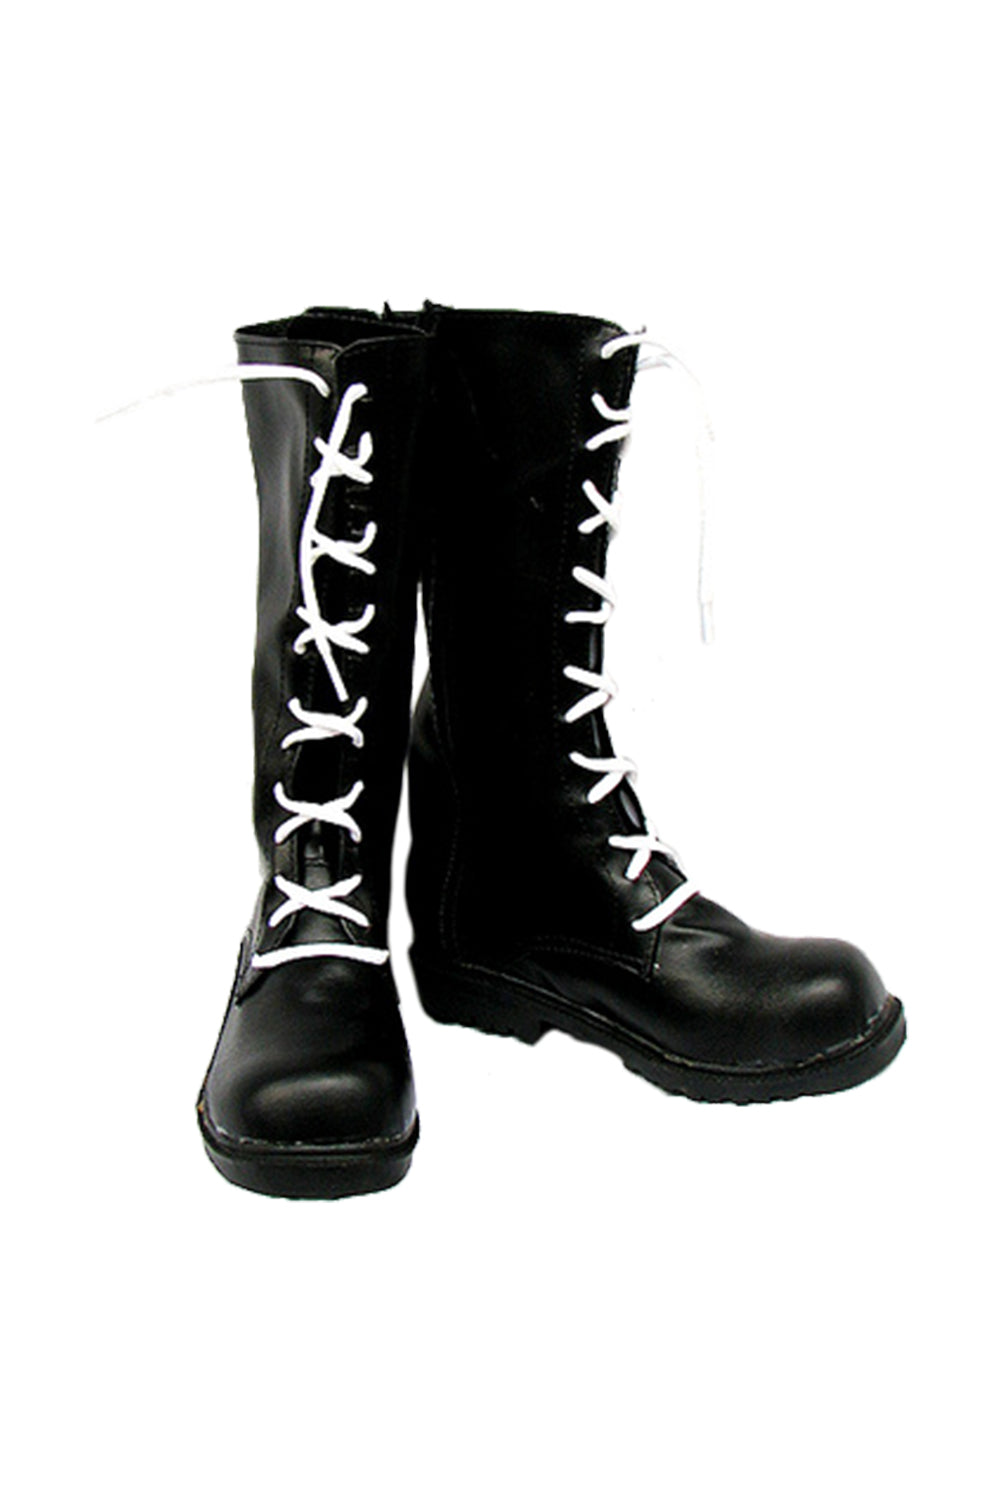 Hitman Reborn Yuni Uni Cosplay Boots Shoes